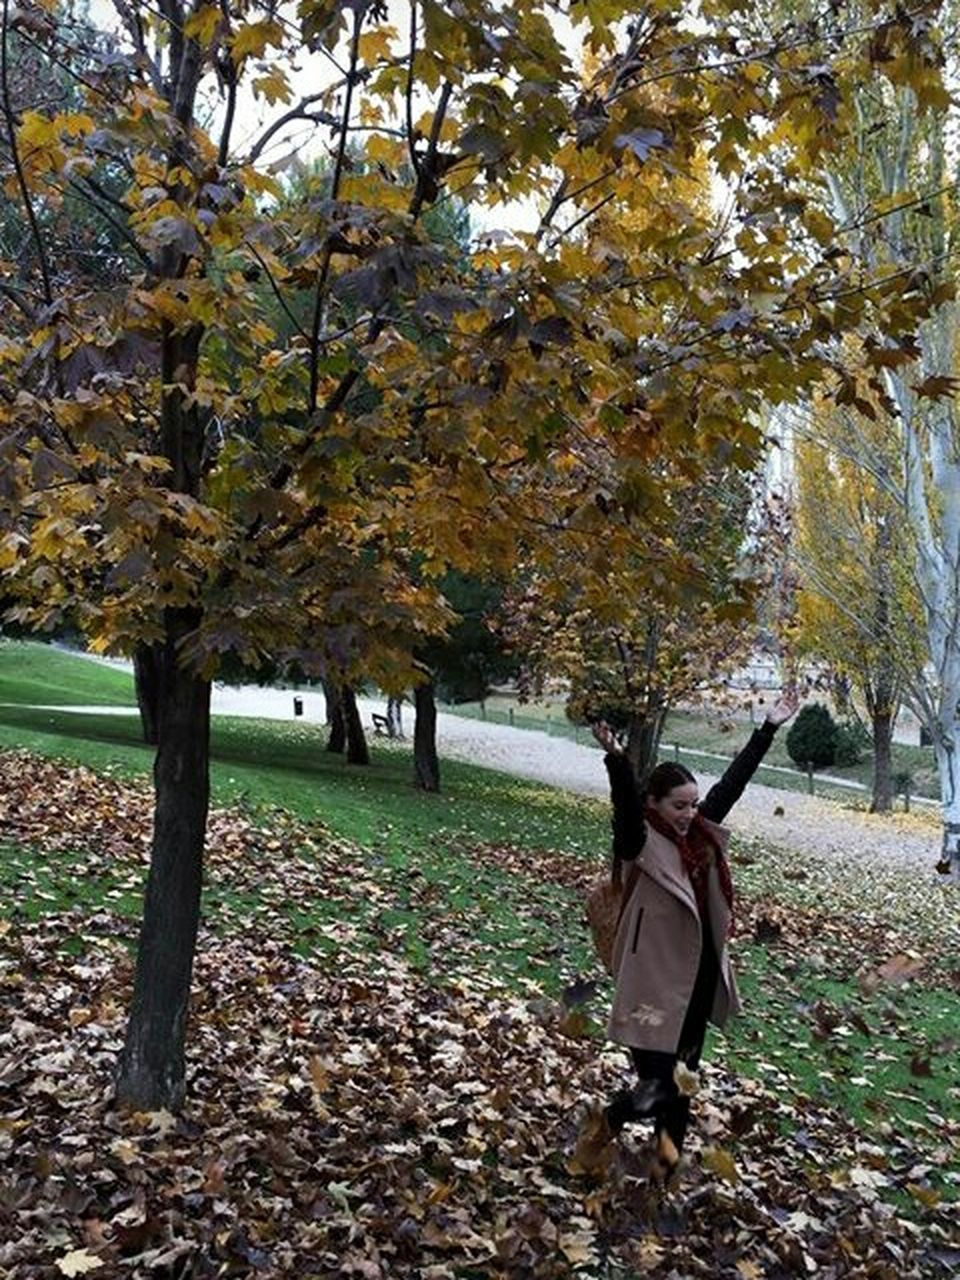 tree, autumn, leaf, nature, change, real people, field, branch, day, outdoors, growth, one person, full length, standing, beauty in nature, tree trunk, lifestyles, women, young women, grass, young adult, adult, people